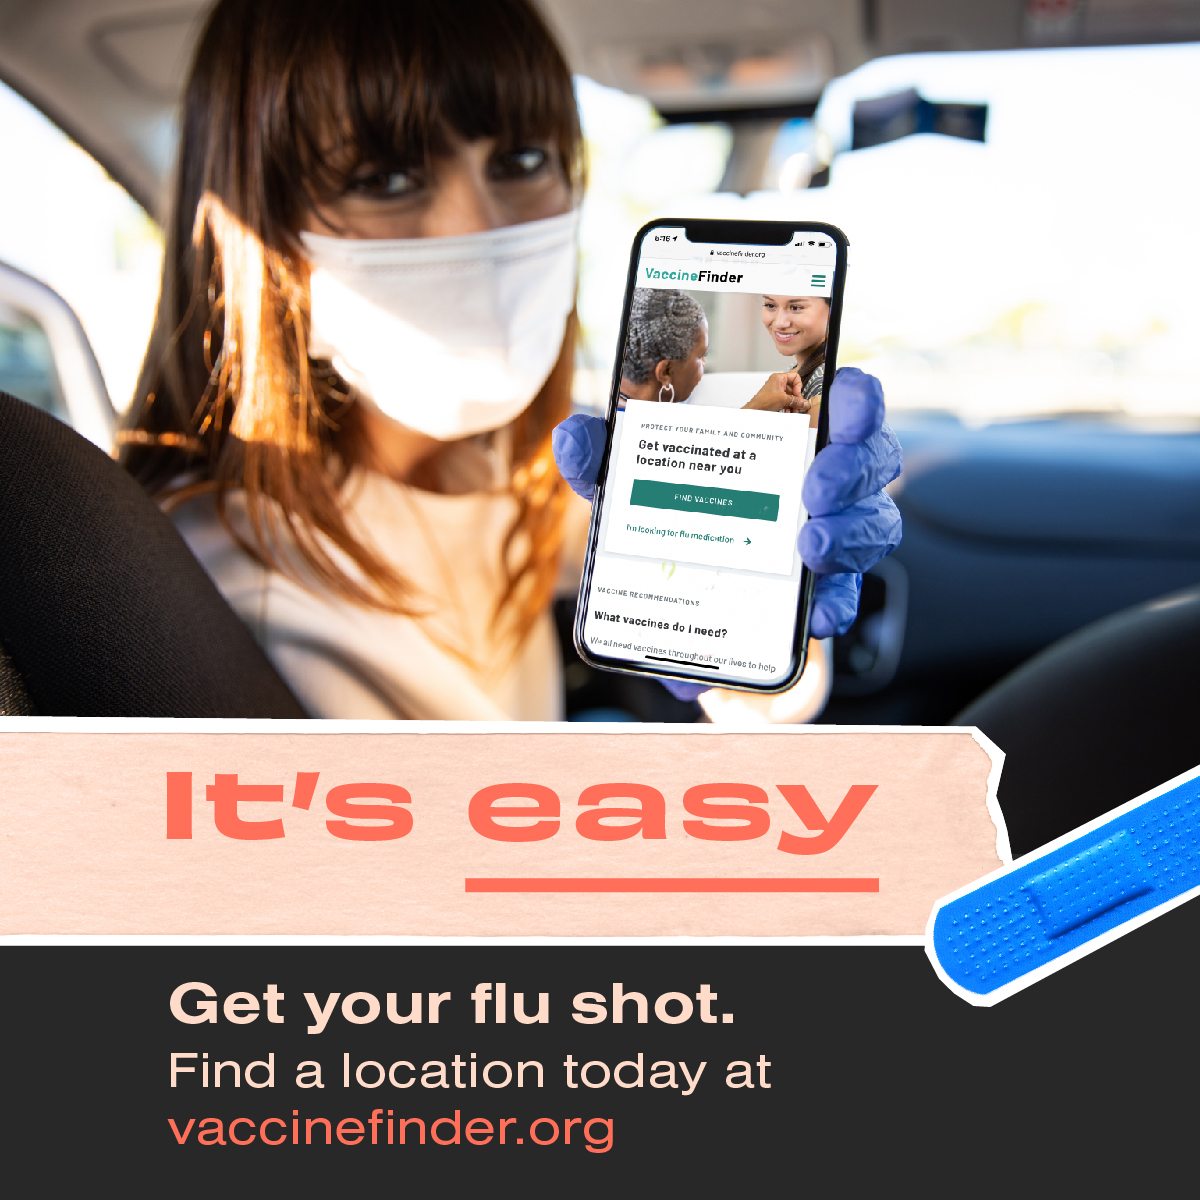 It's easy. Get your flu shot. Find a location today at vaccinefinder.org.